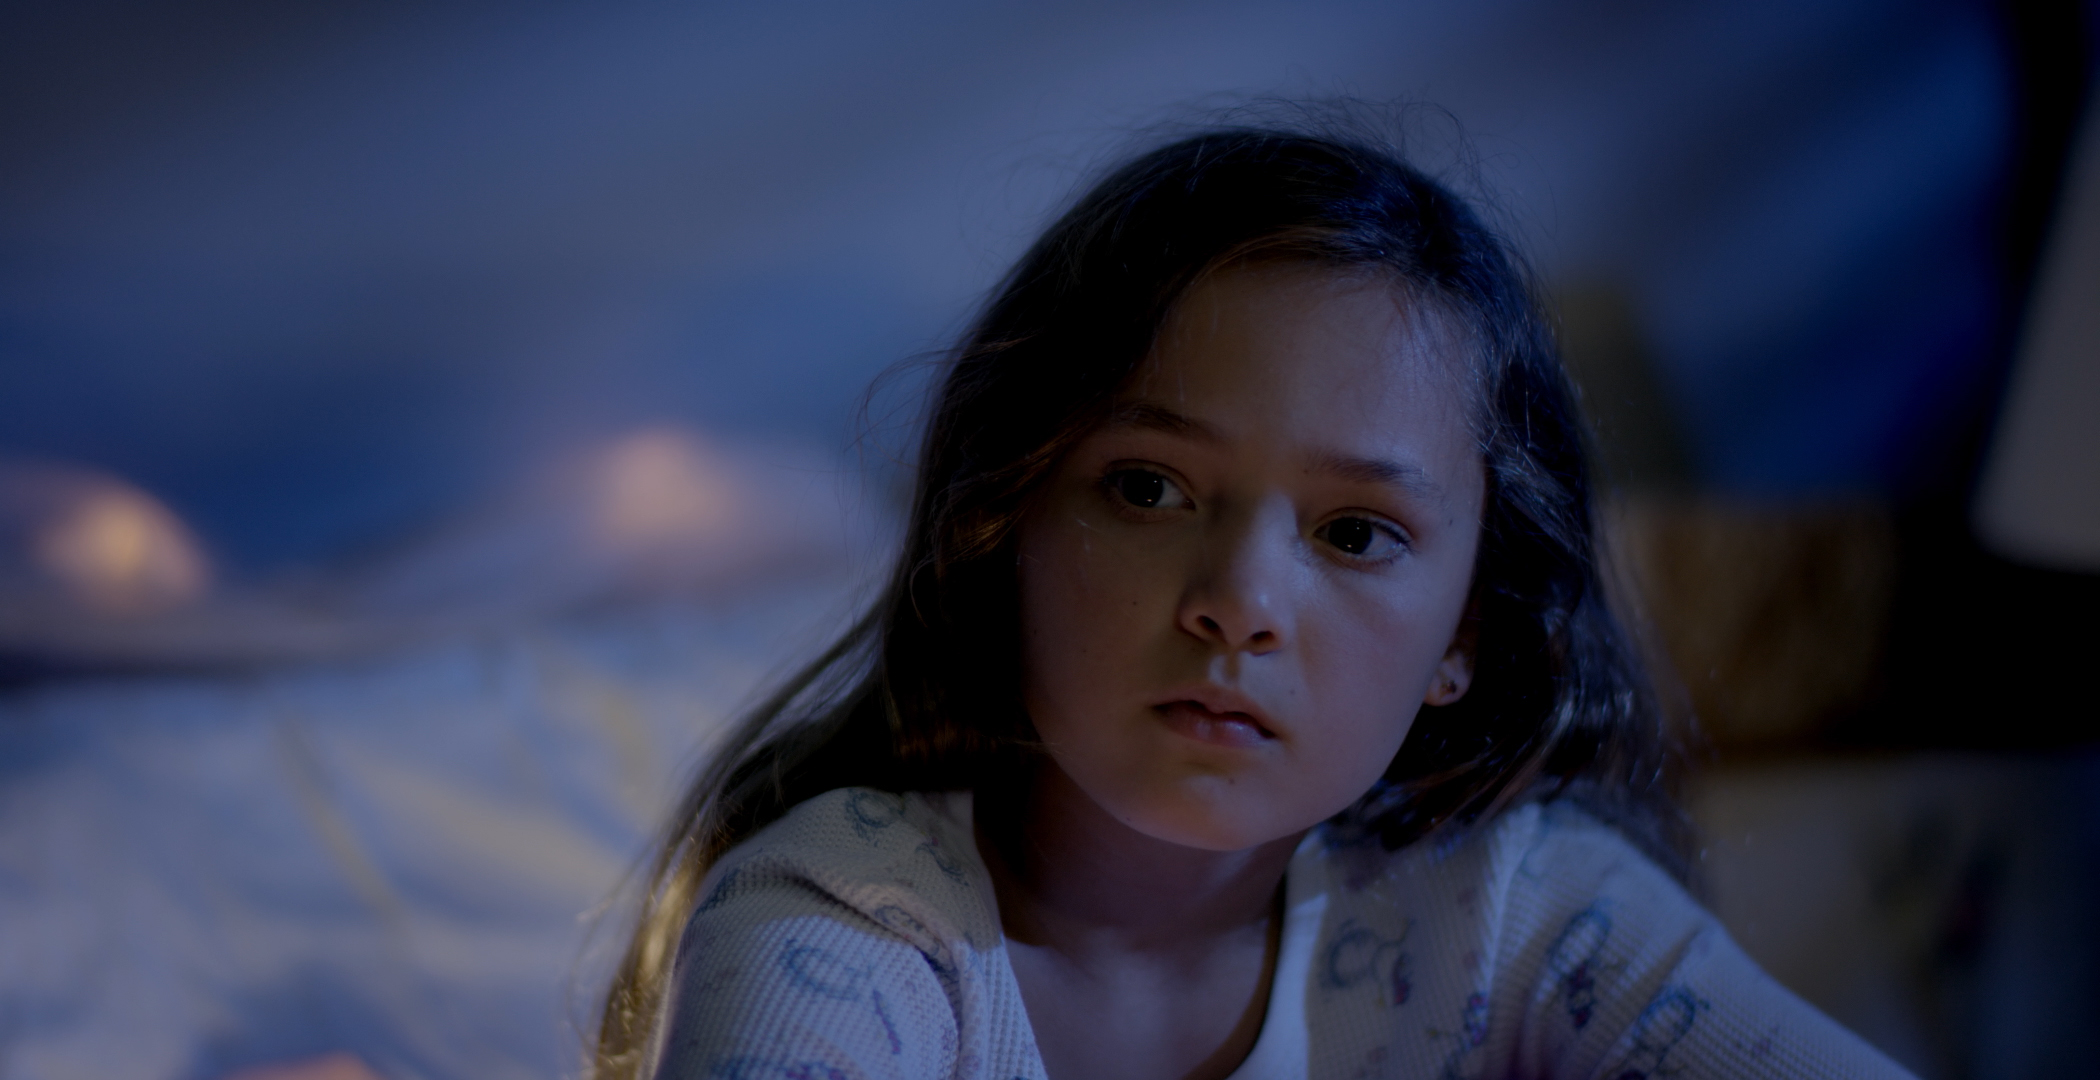 Casey Lopez  as the young girl, Sam.